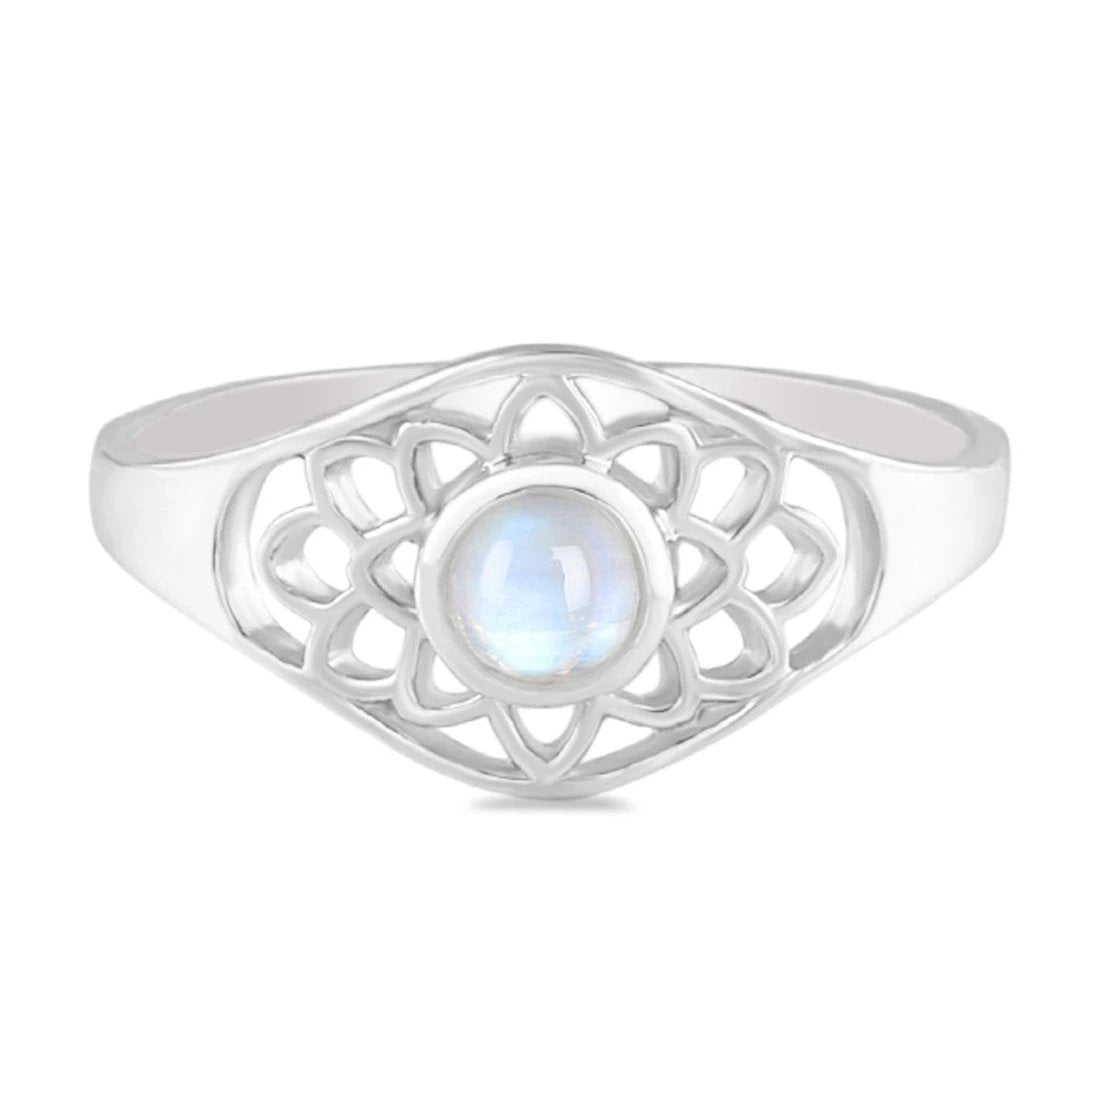 Moonstone Ring-Buddha'S Blessing Moonstone Ring 925 SILVER & MOONSTONE 5 Round Cab-4 mm WHITE